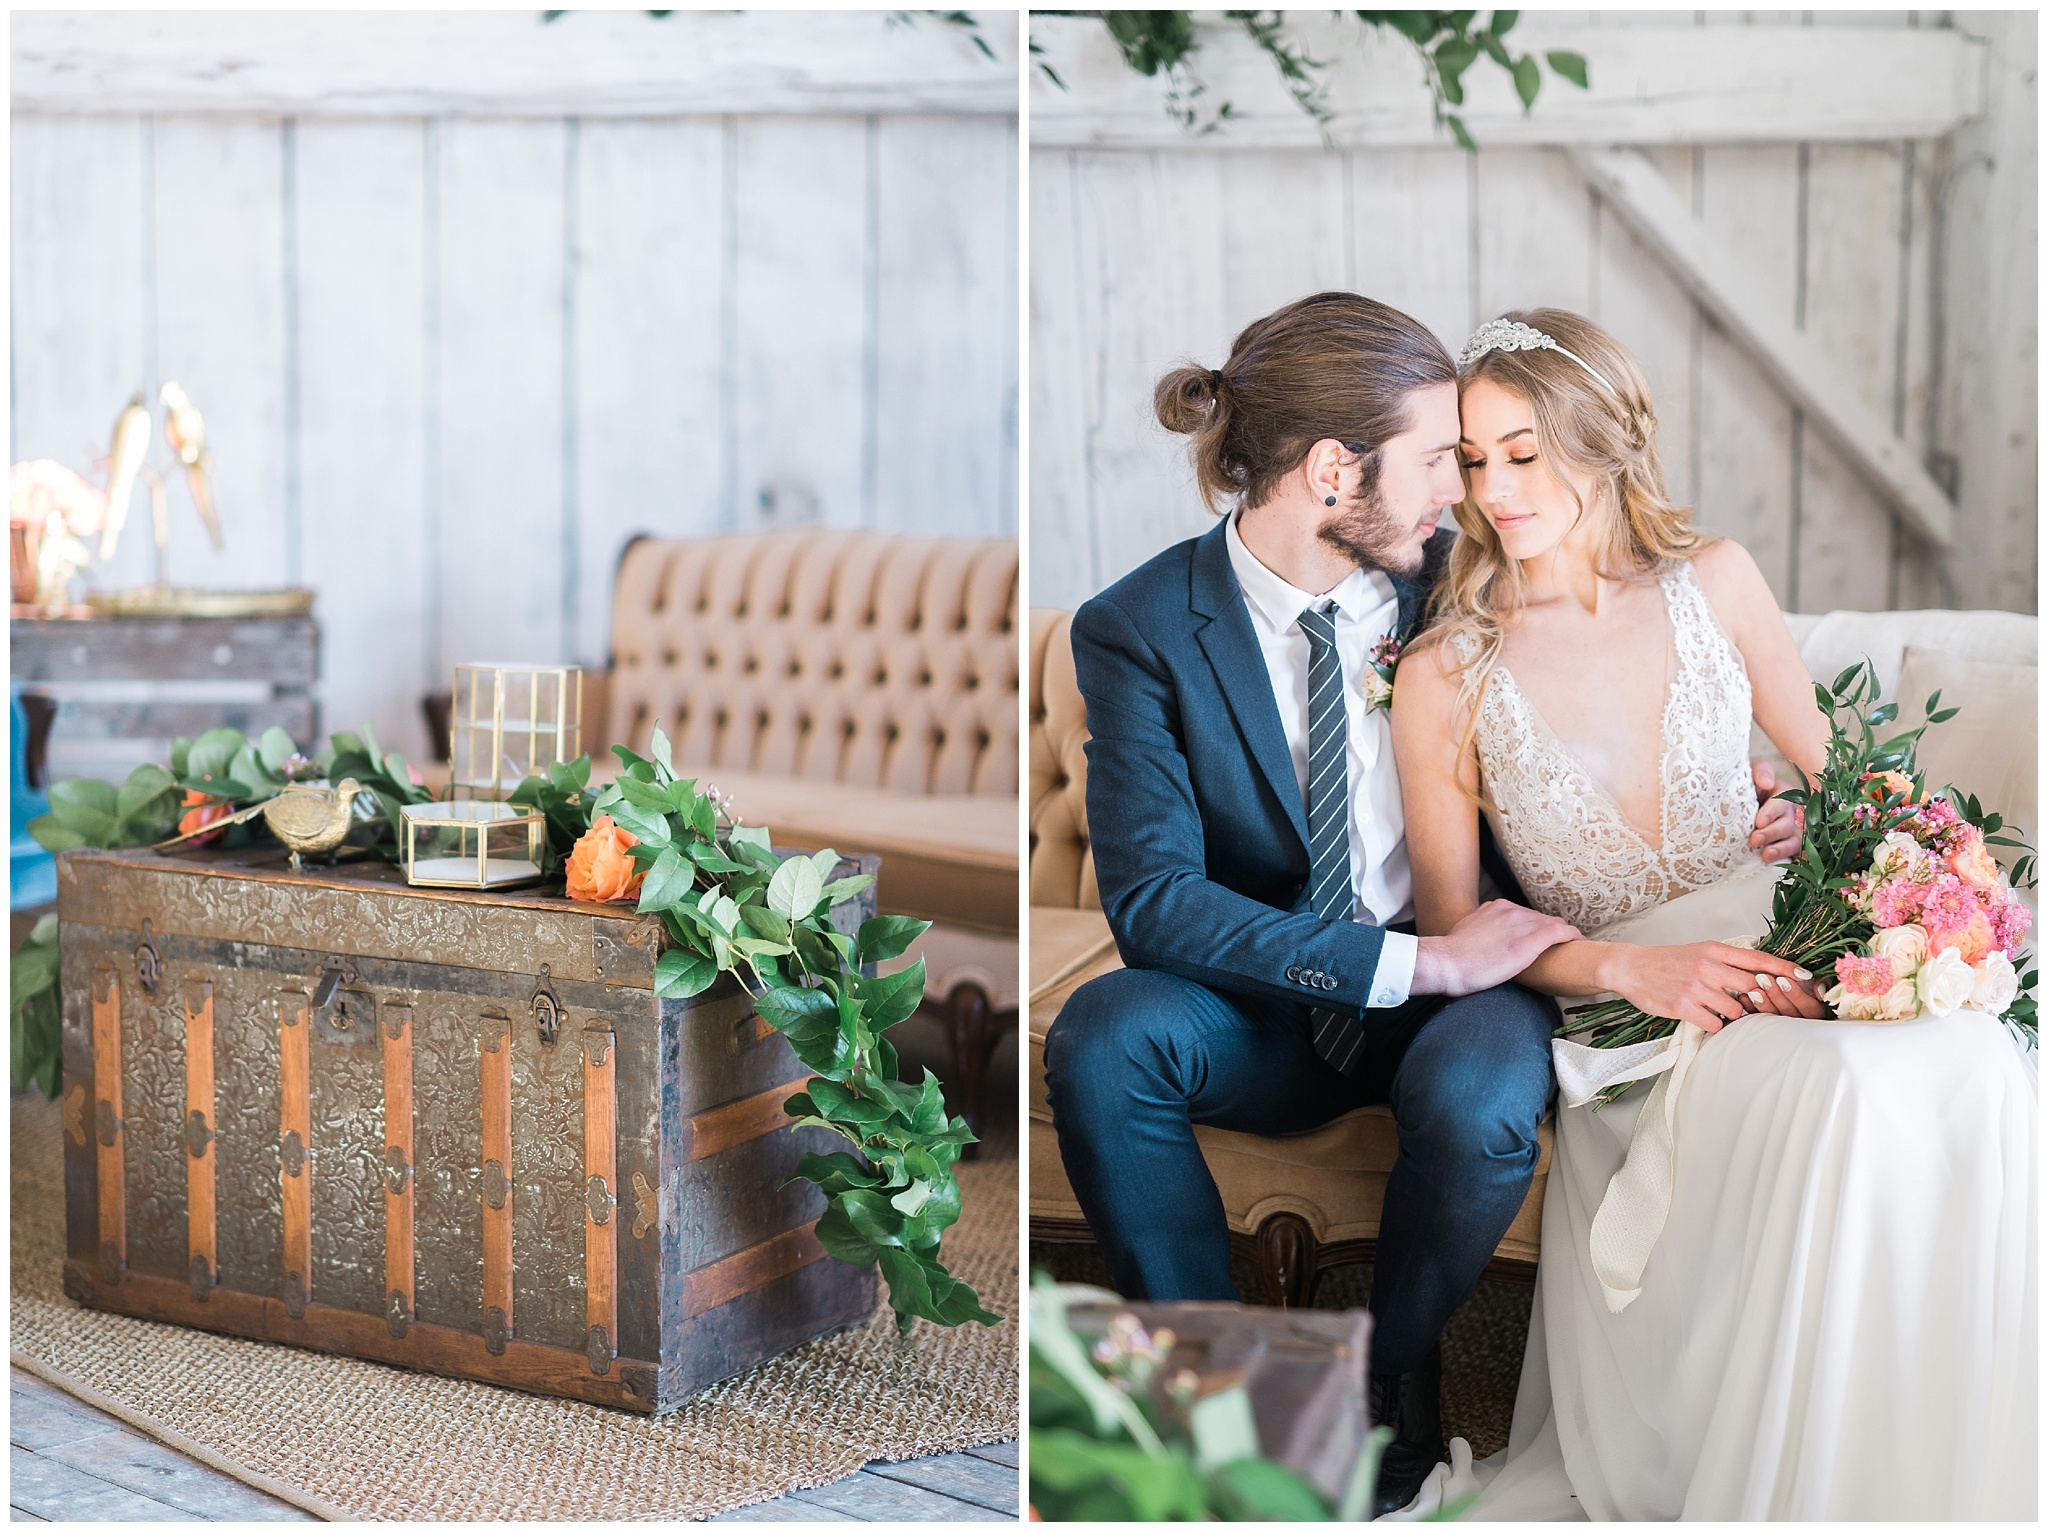 Napa Valley Chic Wedding Inspiration featured on 100 Layer Cake photographed by Jenn Kavanagh Photography